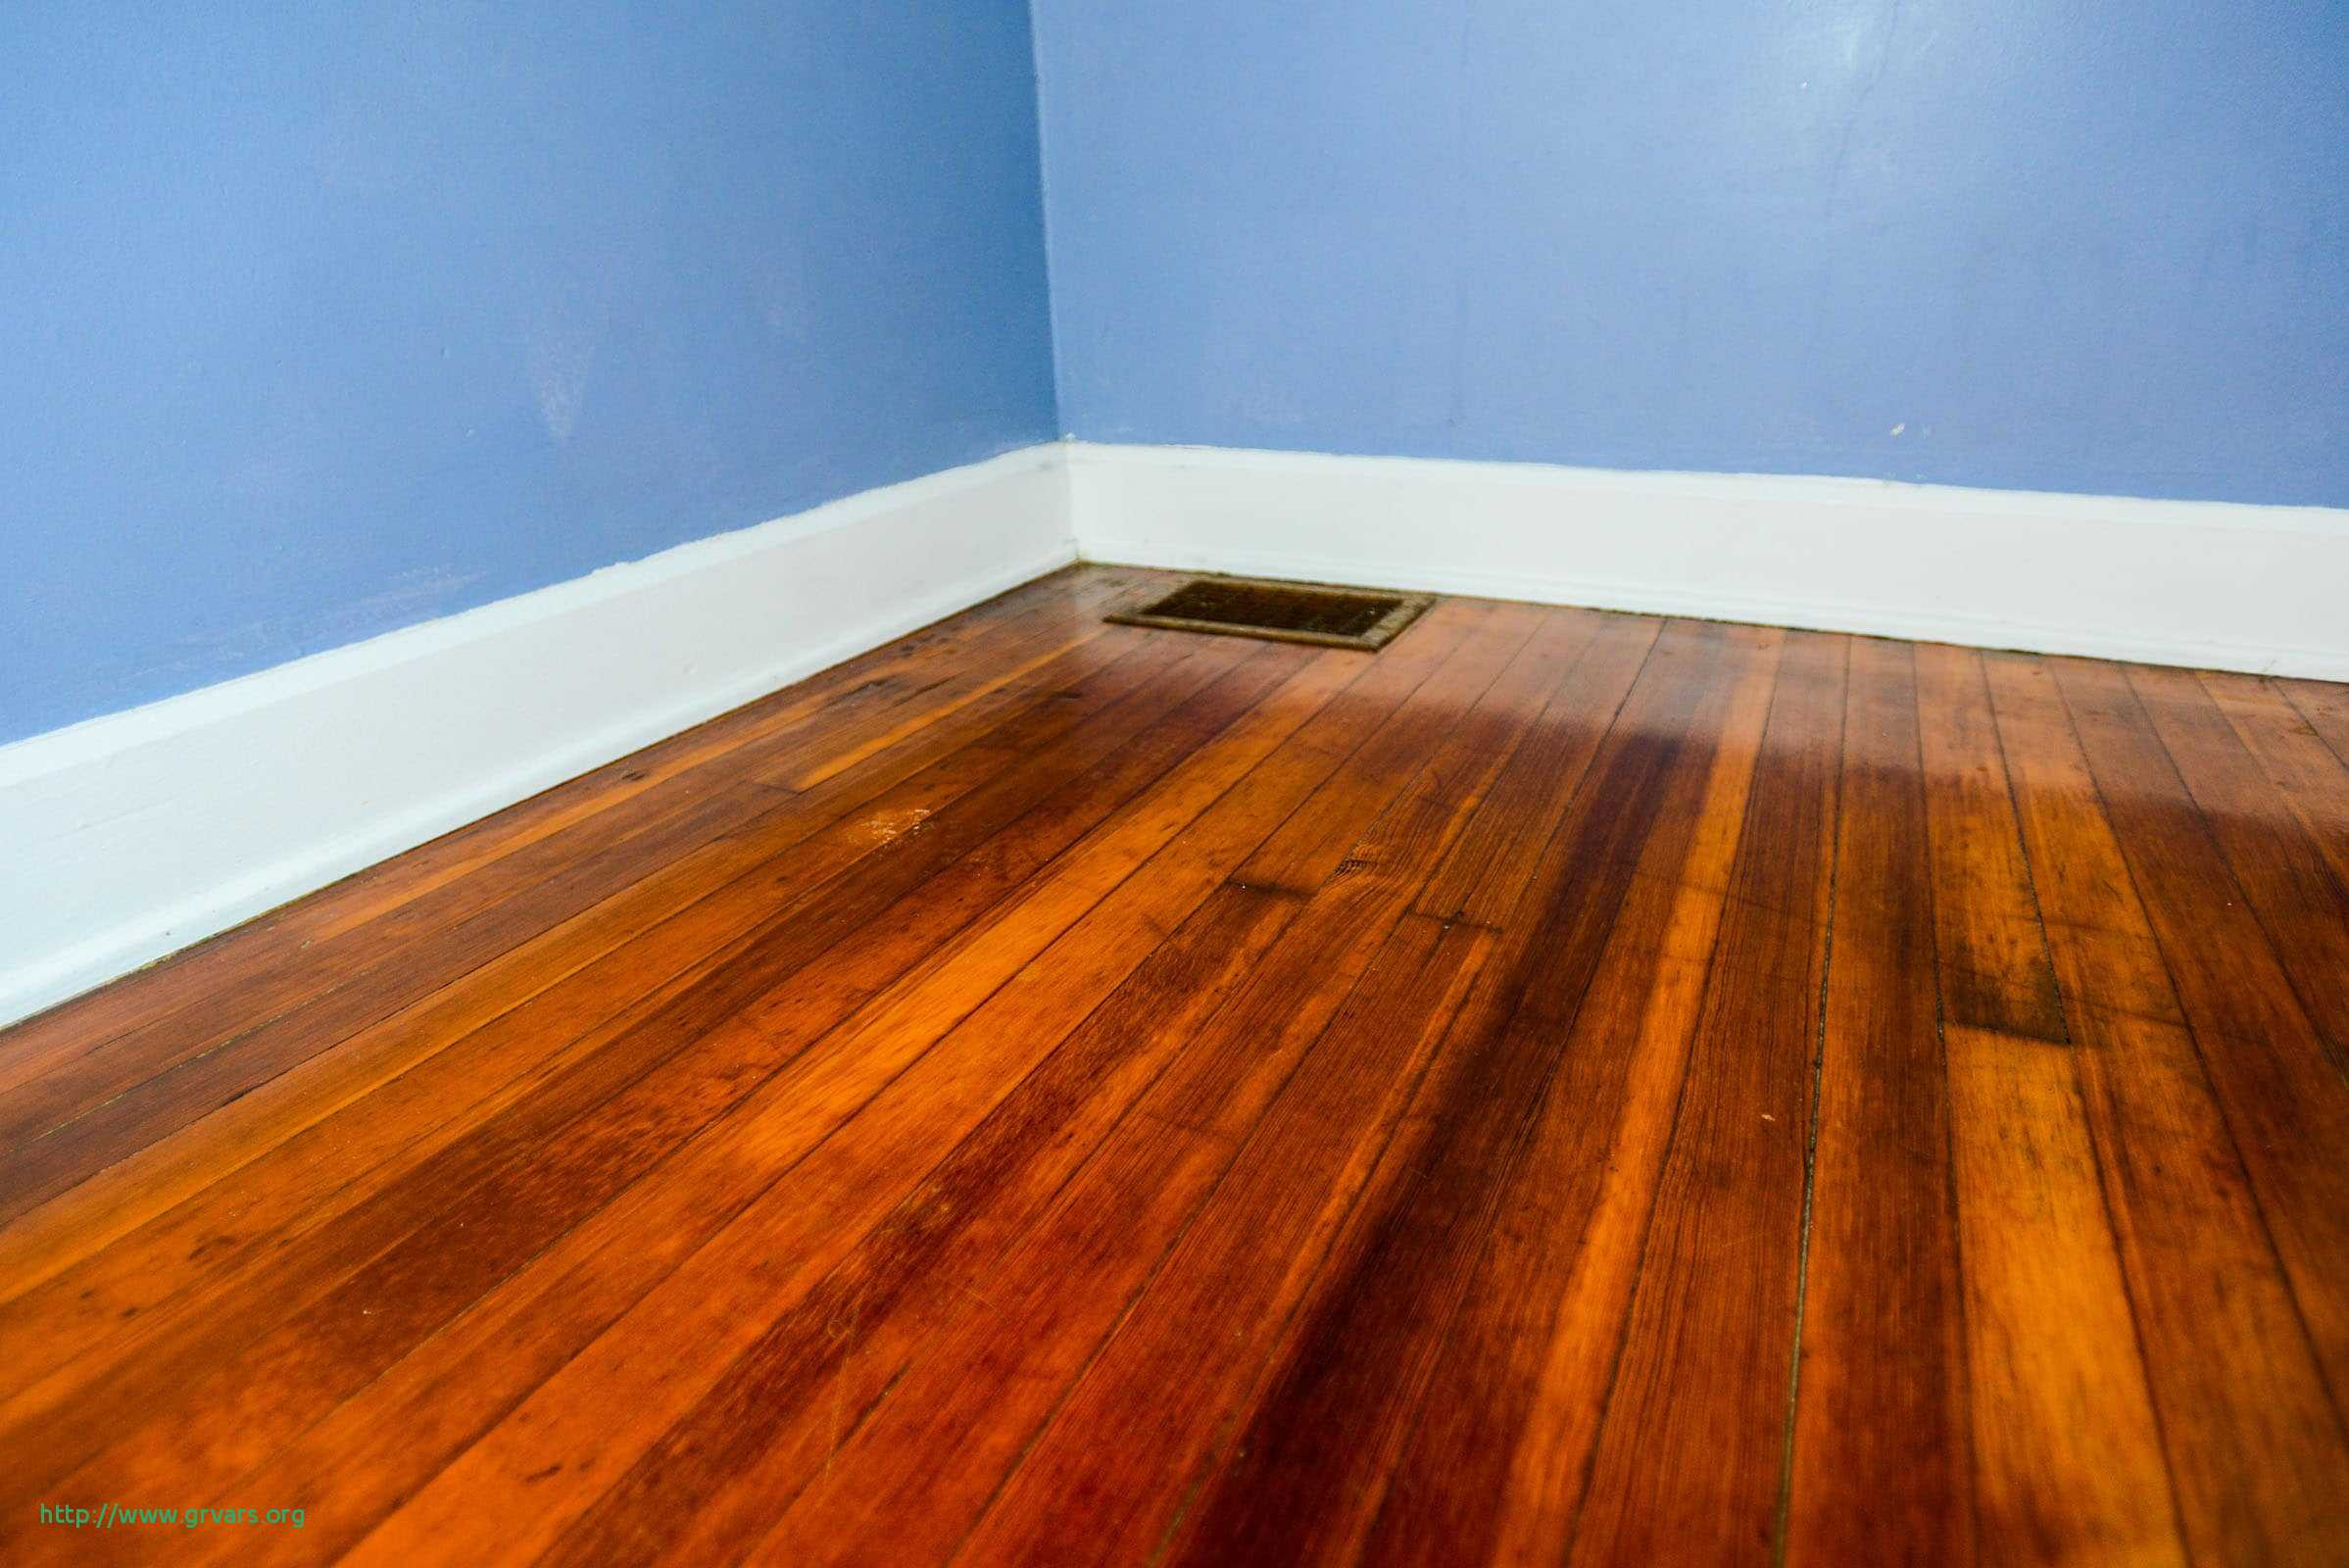 moisture barrier for hardwood floors of 23 unique wood floor glue with moisture barrier ideas blog intended for wood floor glue with moisture barrier luxe how to silence a squeaking floor